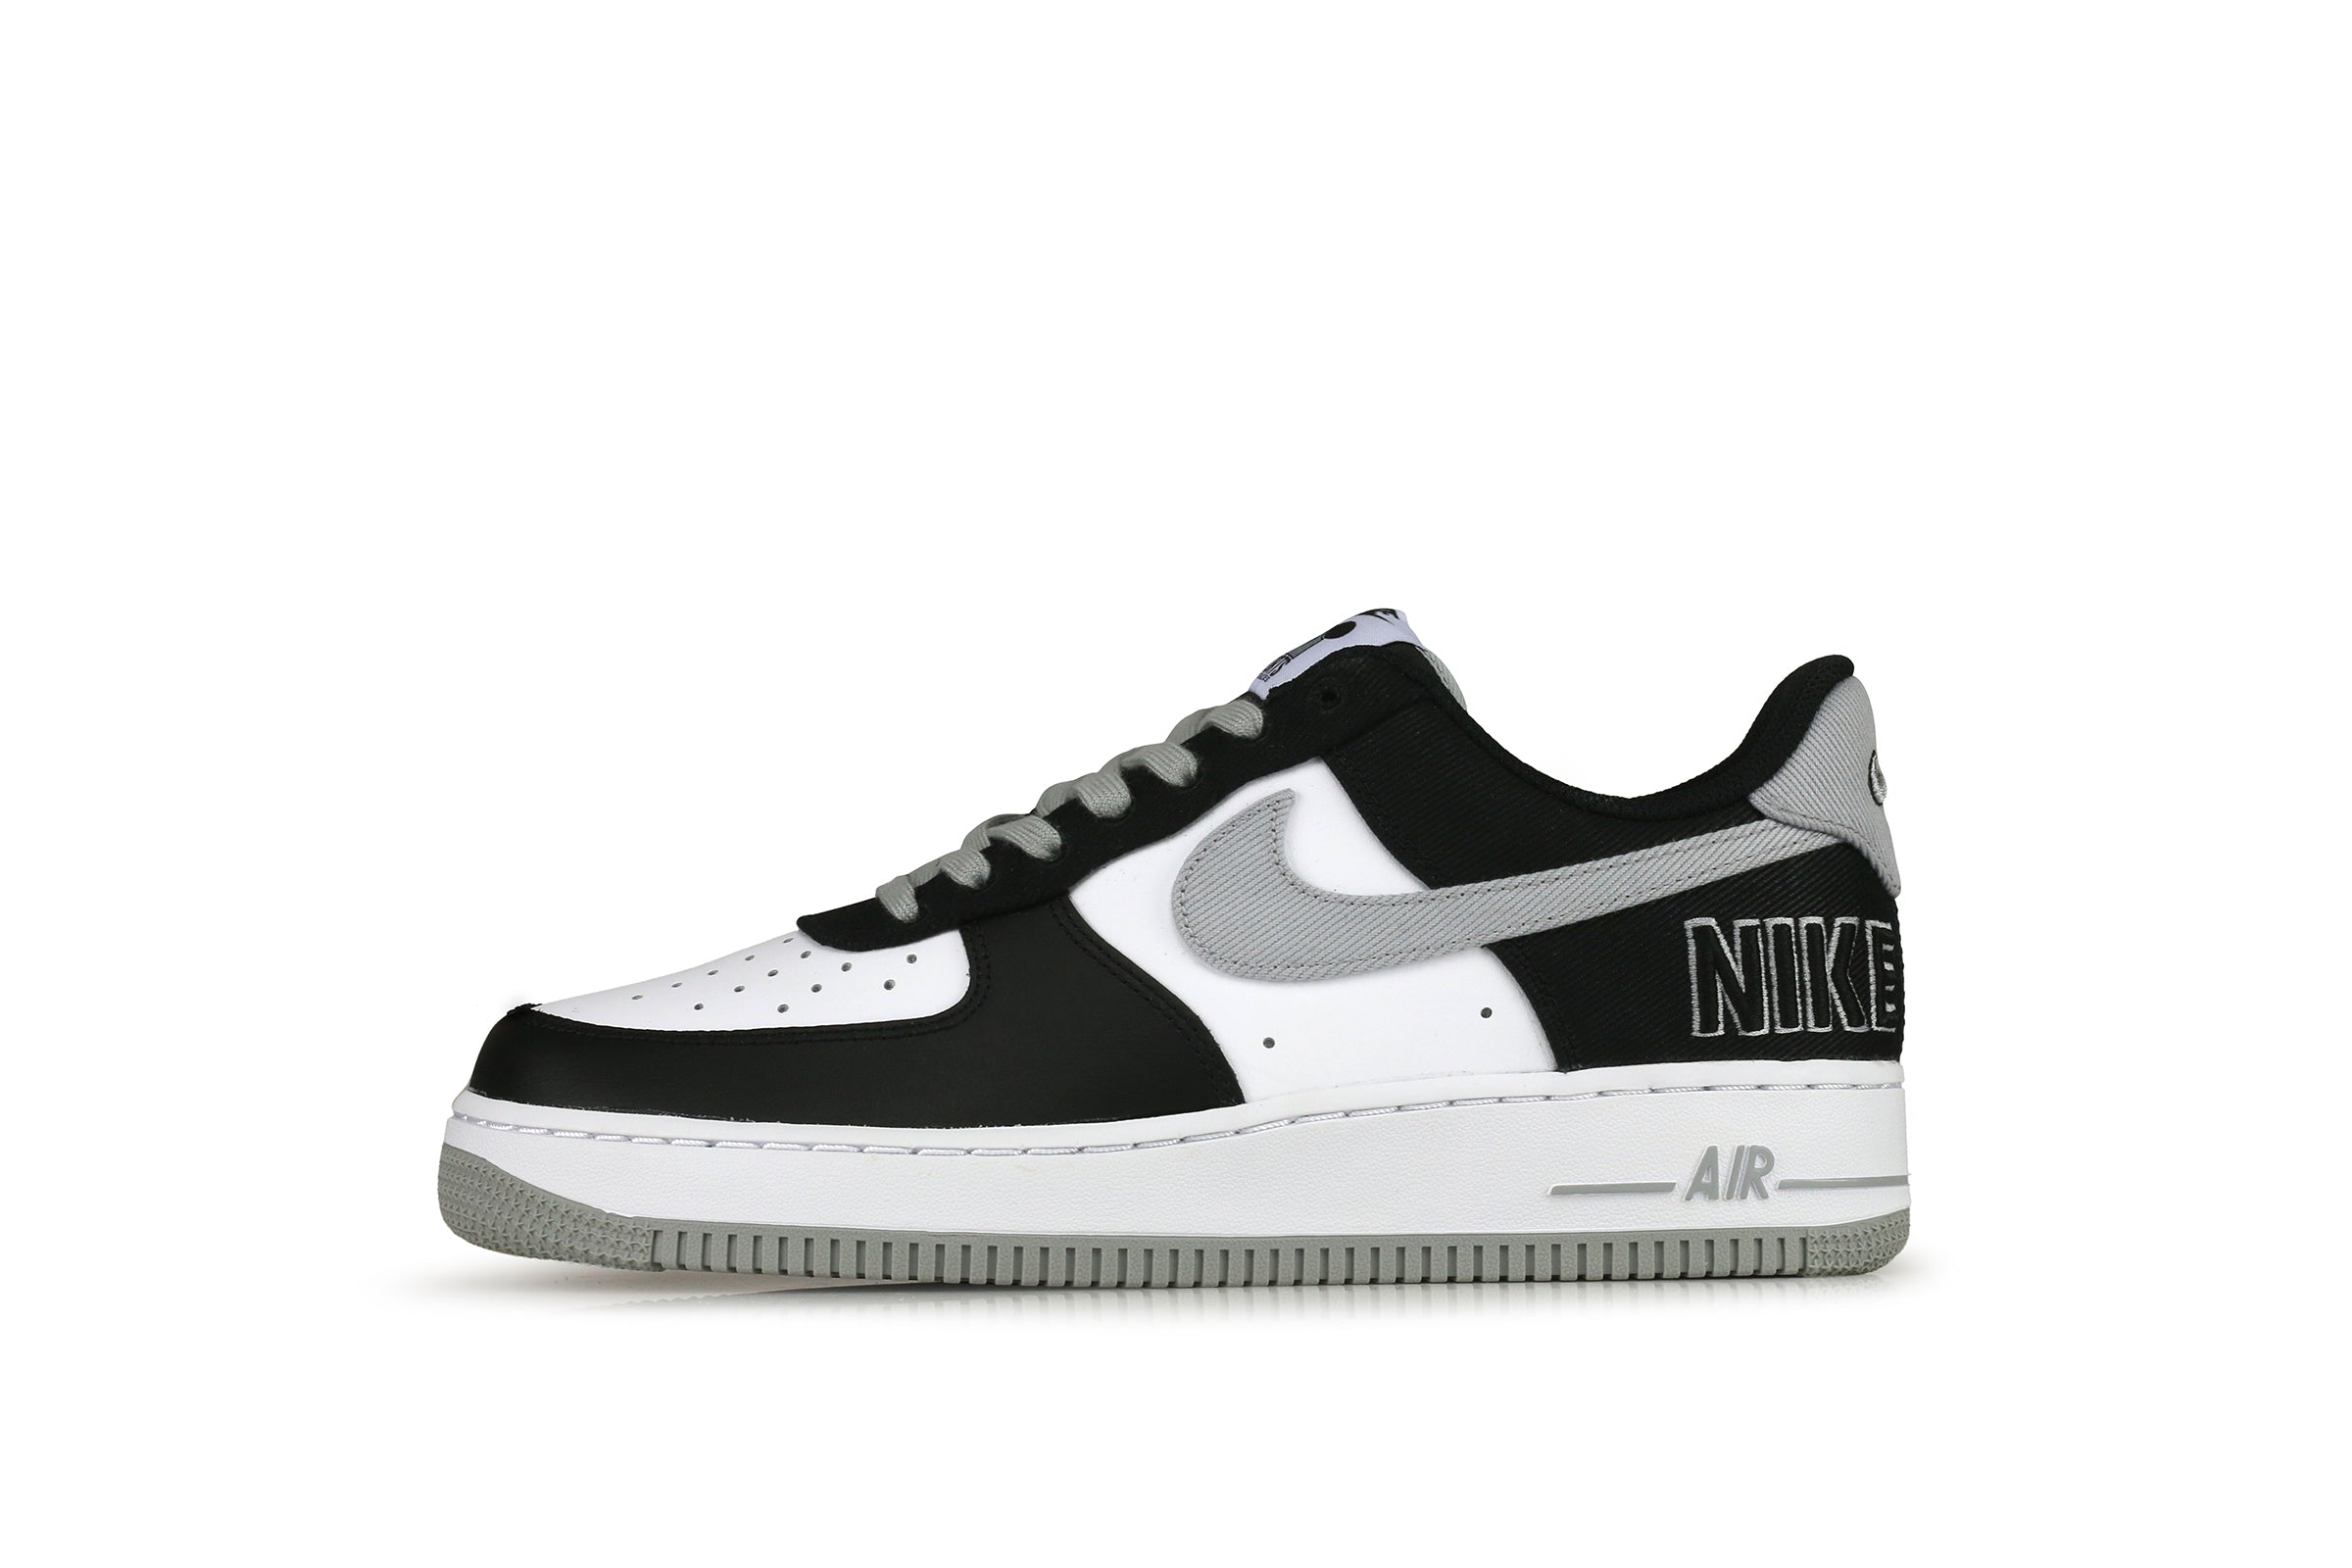 Nike Air Force 1 07 LV8 EMB